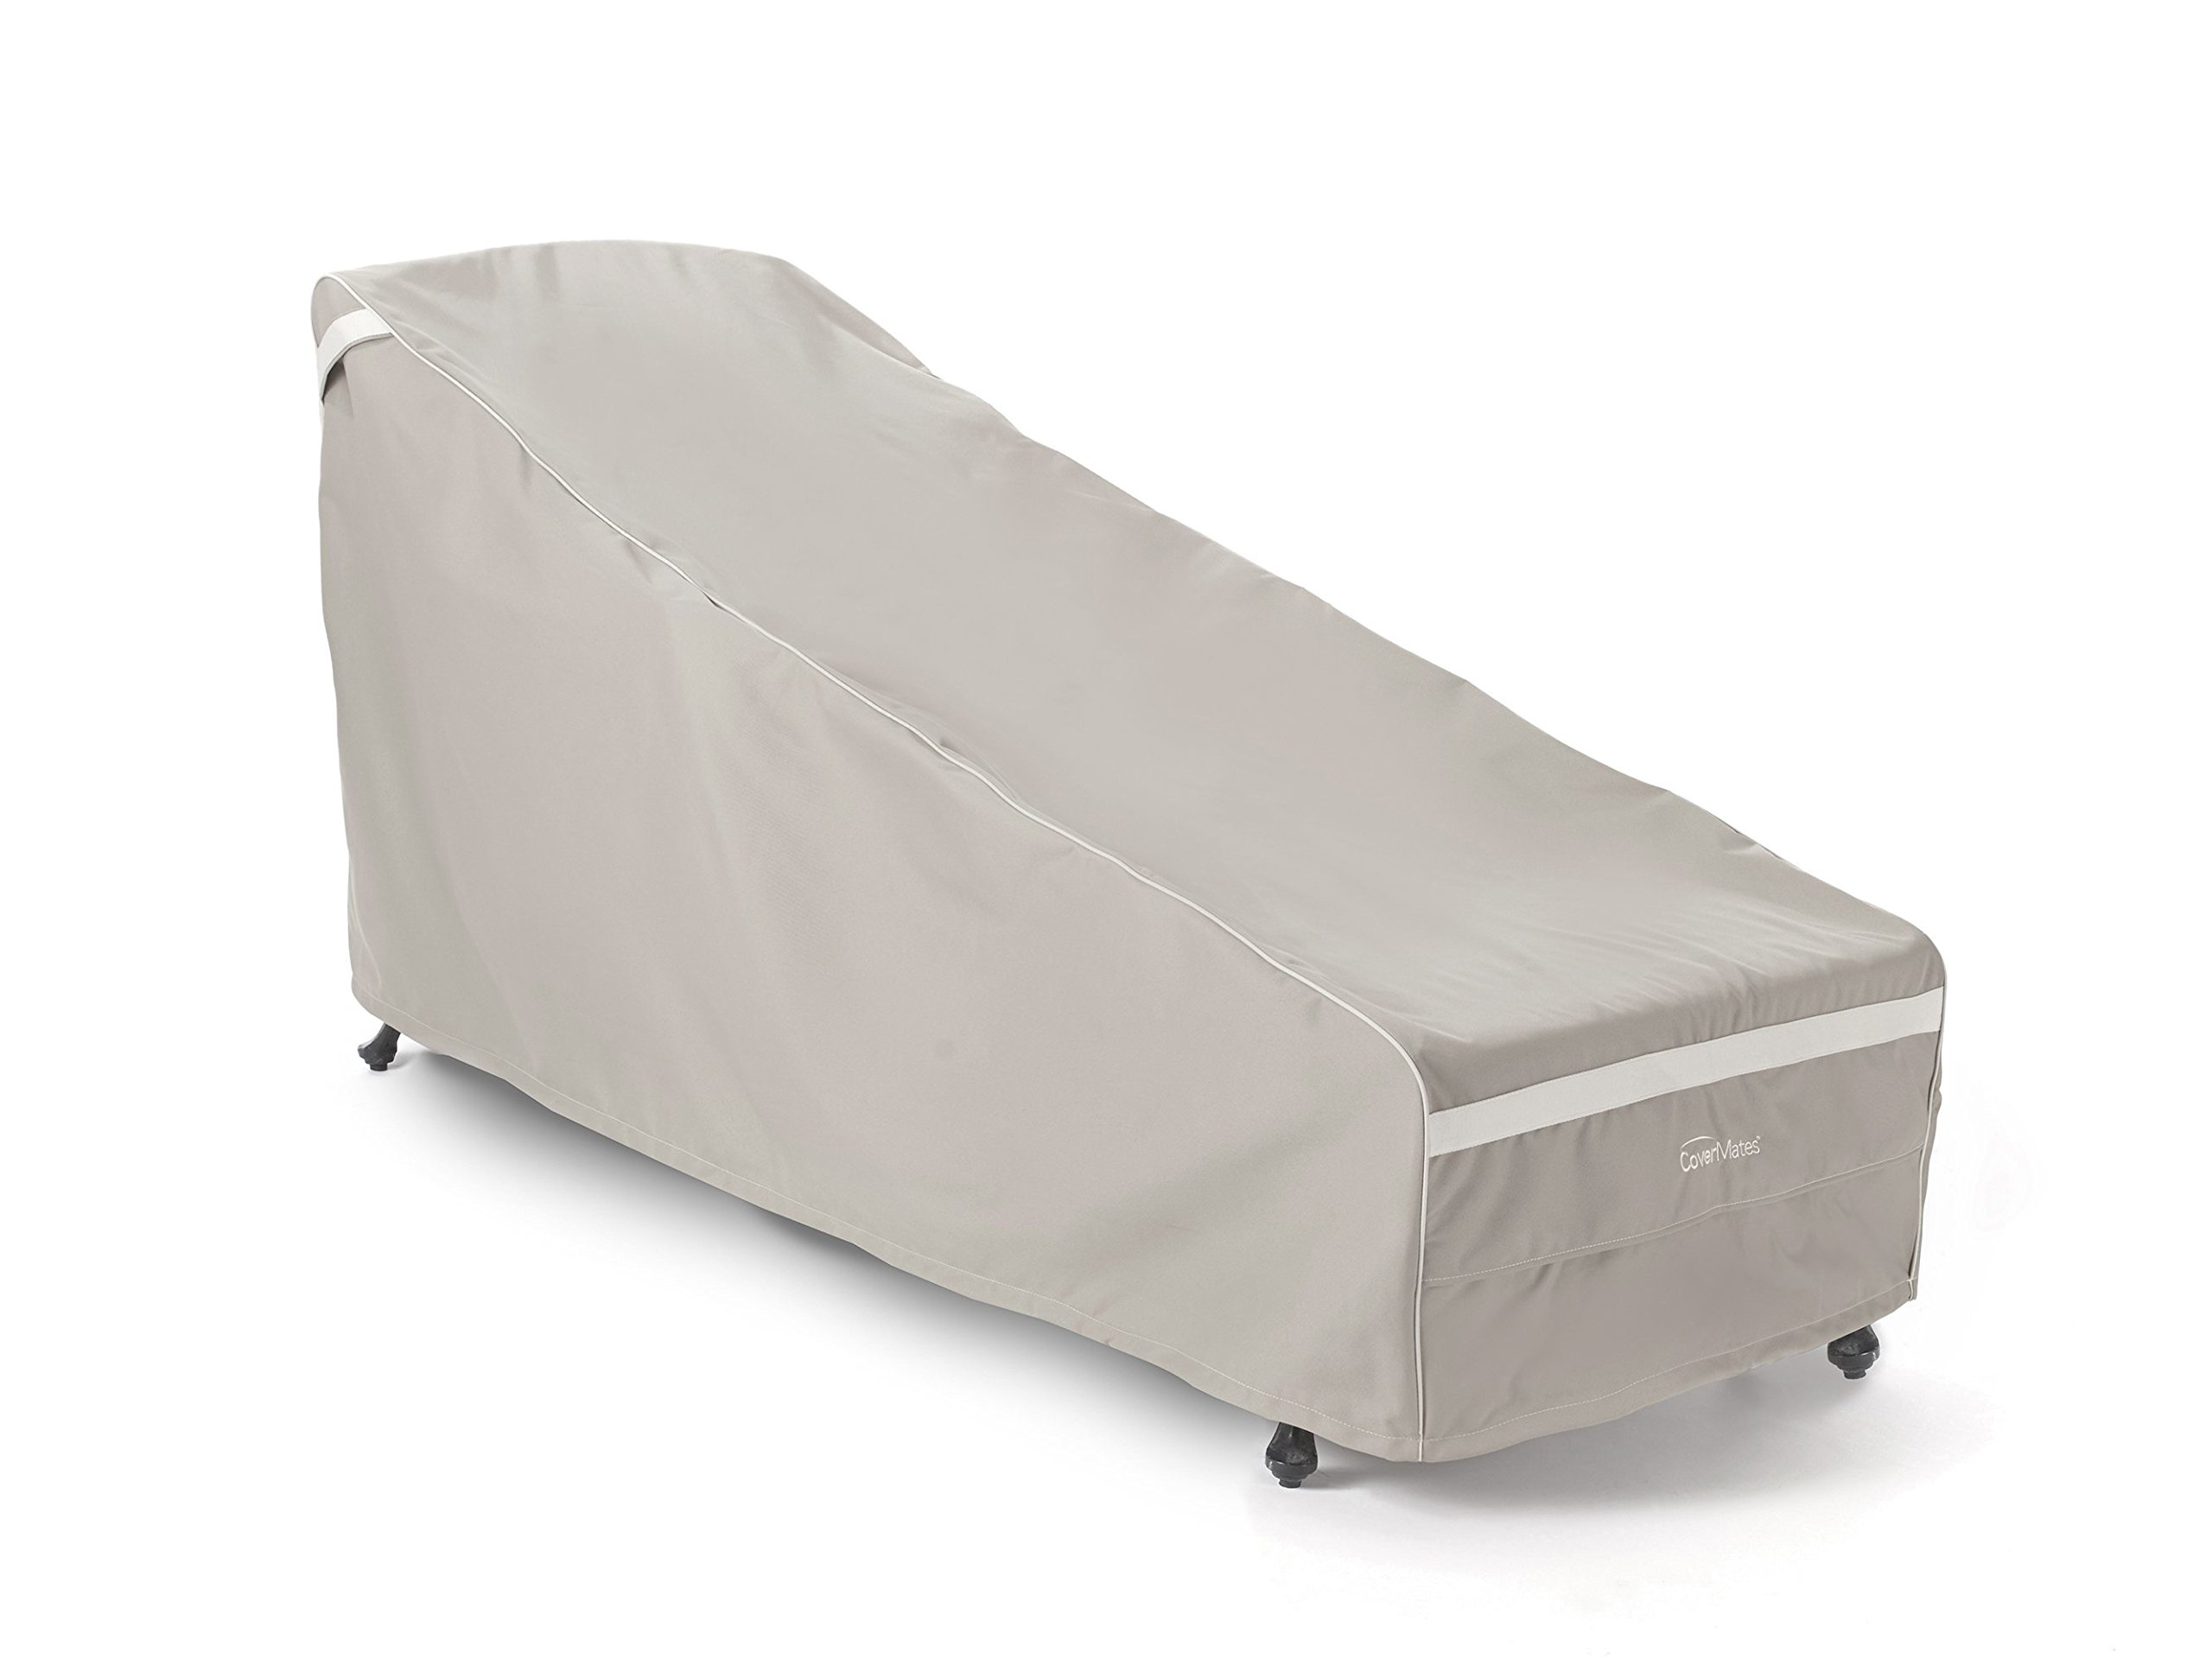 Covermates – Chaise Lounge Cover – 25W x 78D x 30H – Prestige Collection – 7 YR Warranty – Year Around Protection - Clay by Covermates (Image #1)